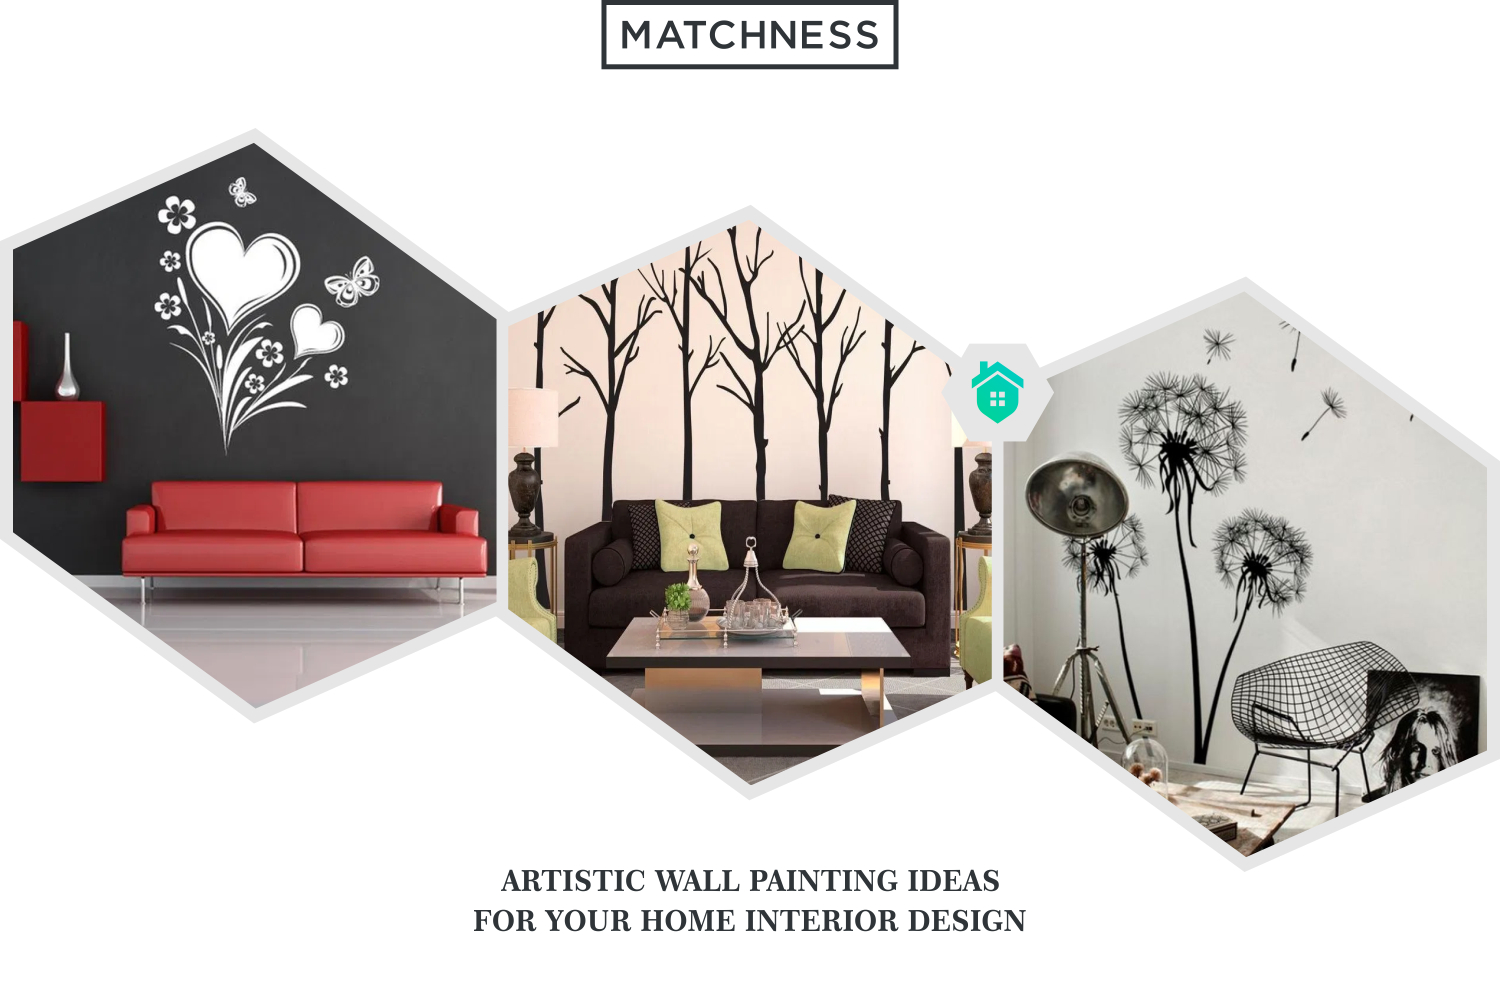 20 Artistic Wall Painting Ideas for Your Home Interior Design ~  Matchness.com